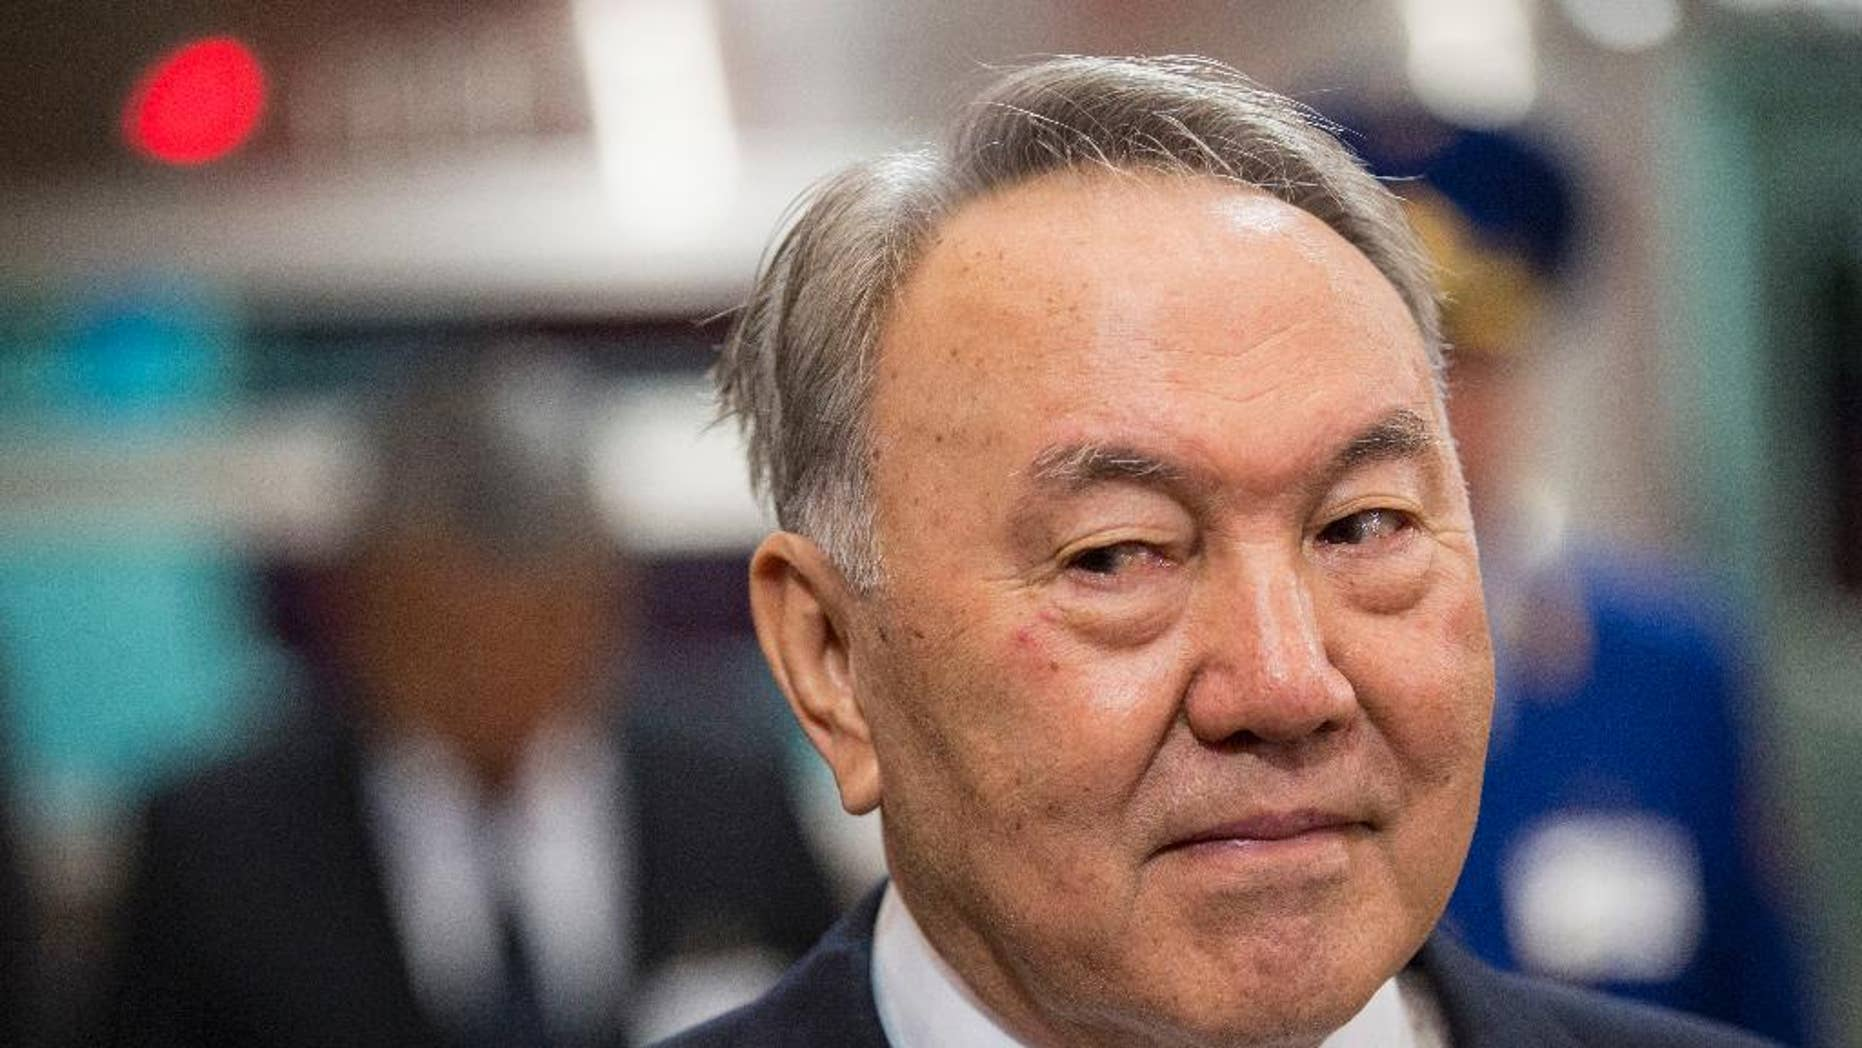 """FILE - In this Saturday, April 18, 2015 file photo, Kazakhstan's President and the main presidential candidate Nursultan Nazarbayev is seen during the opening of the """"Moscow"""" subway station of the Almaty metro system in Almaty, Kazakhstan. As oil-rich Kazakhstan votes for a president Sunday, April 26, 2015, the governing elite is pounding home a mantra of stability as fears percolate about the country's massive Russian minority taking inspiration from the Moscow-backed insurgency in Ukraine.With authorities clamping down on all opposition, Nursultan Nazarbayev's re-election is a done deal. The former Communist party boss' two rivals - a trade union leader and a Communist politician- have negligible public profiles and are standing only to create the illusion of competition. (AP Photo/Pavel Mikheyev, file)"""